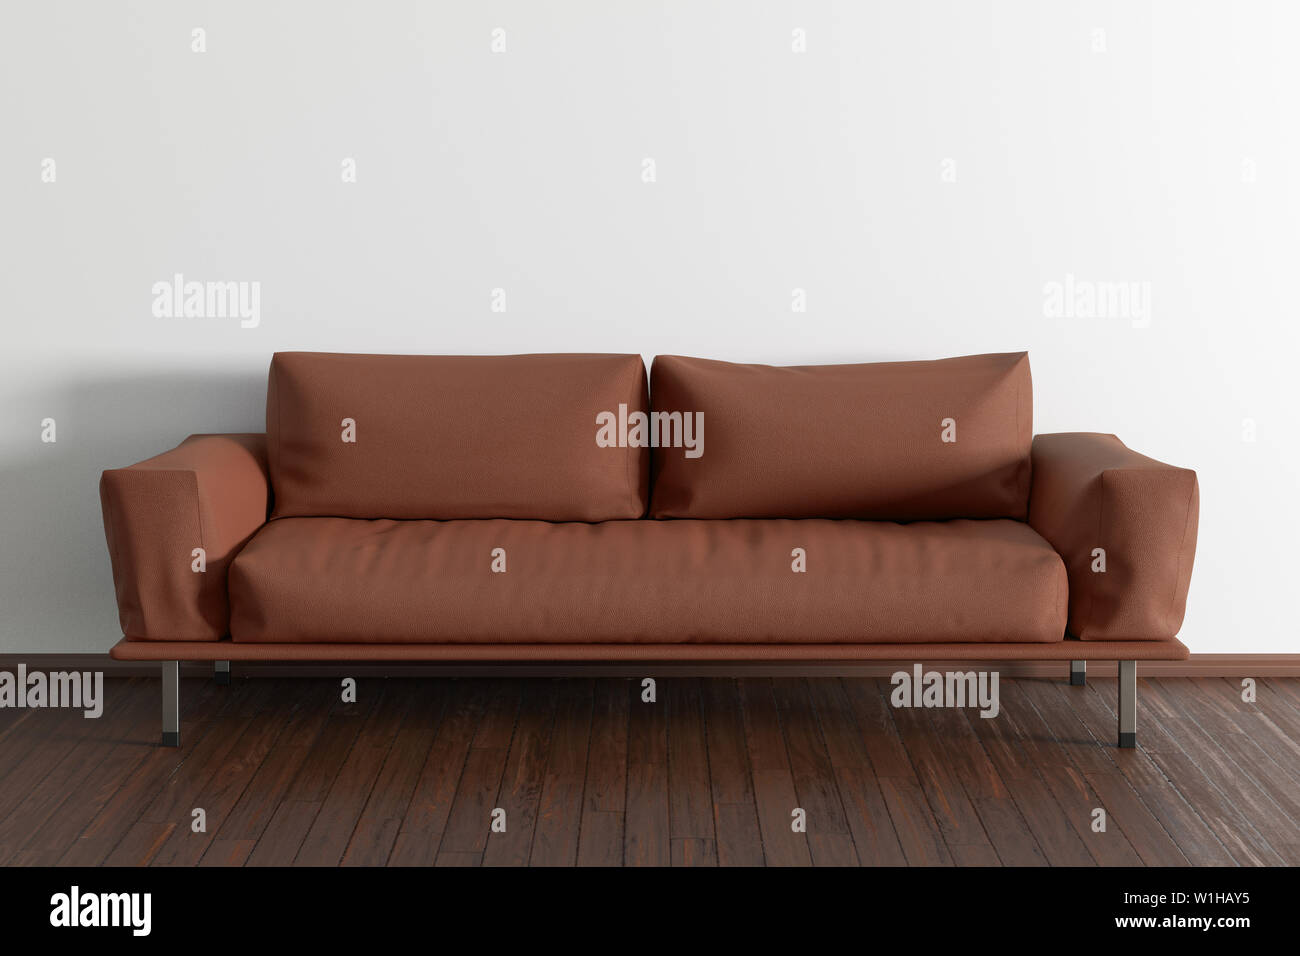 Tremendous Brown Leather Couch In Interior Of Living Room With Wooden Gmtry Best Dining Table And Chair Ideas Images Gmtryco